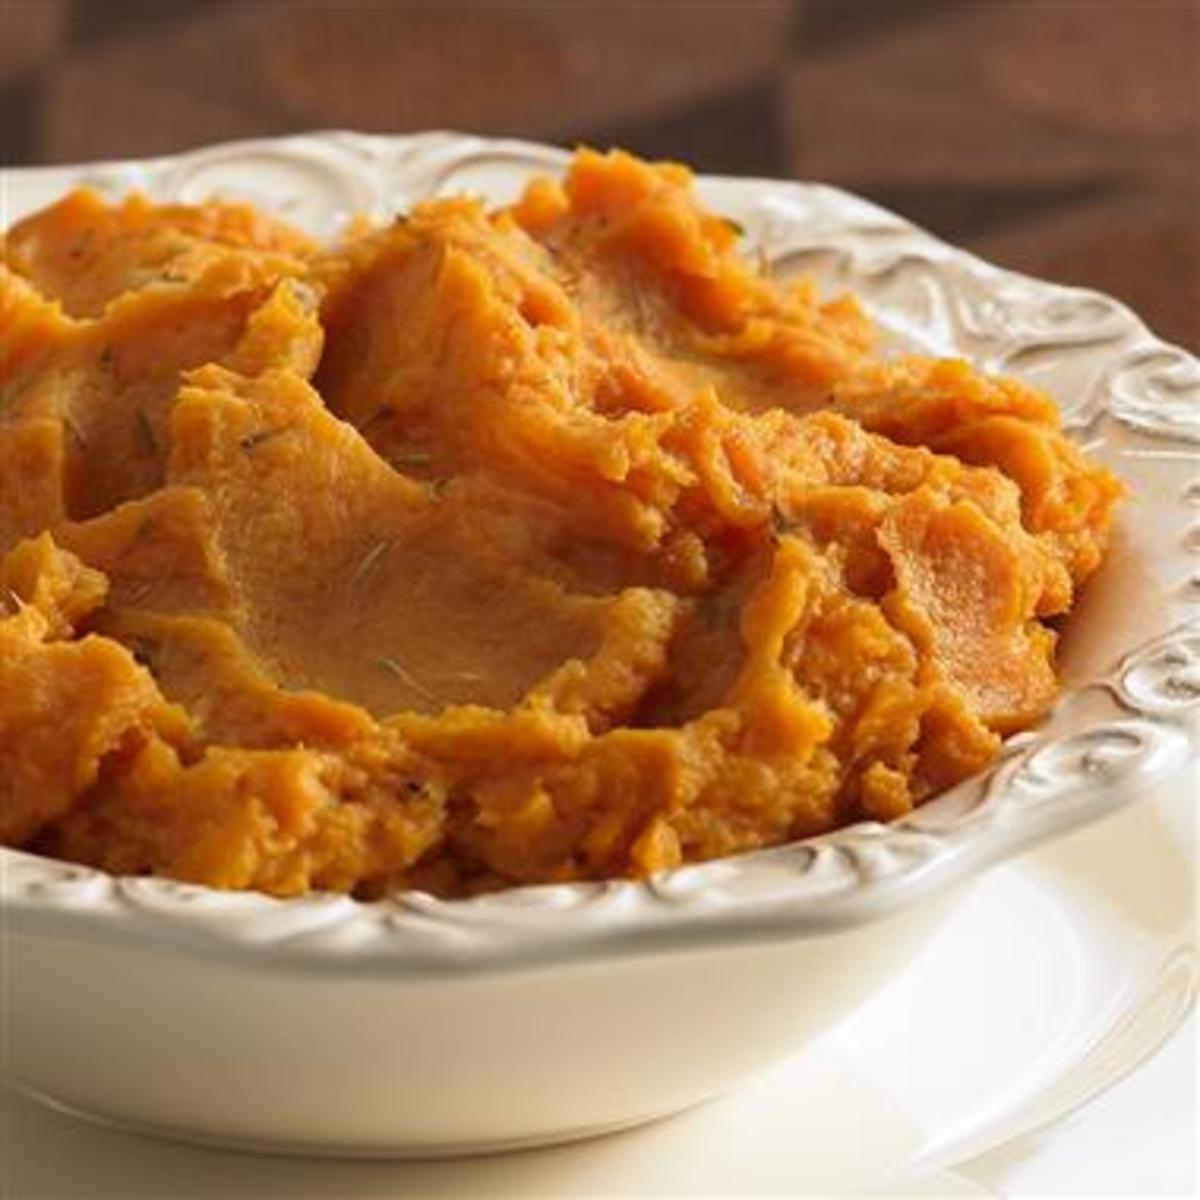 How to cook sweet potatoes hubpages for How to make delicious sweet potatoes